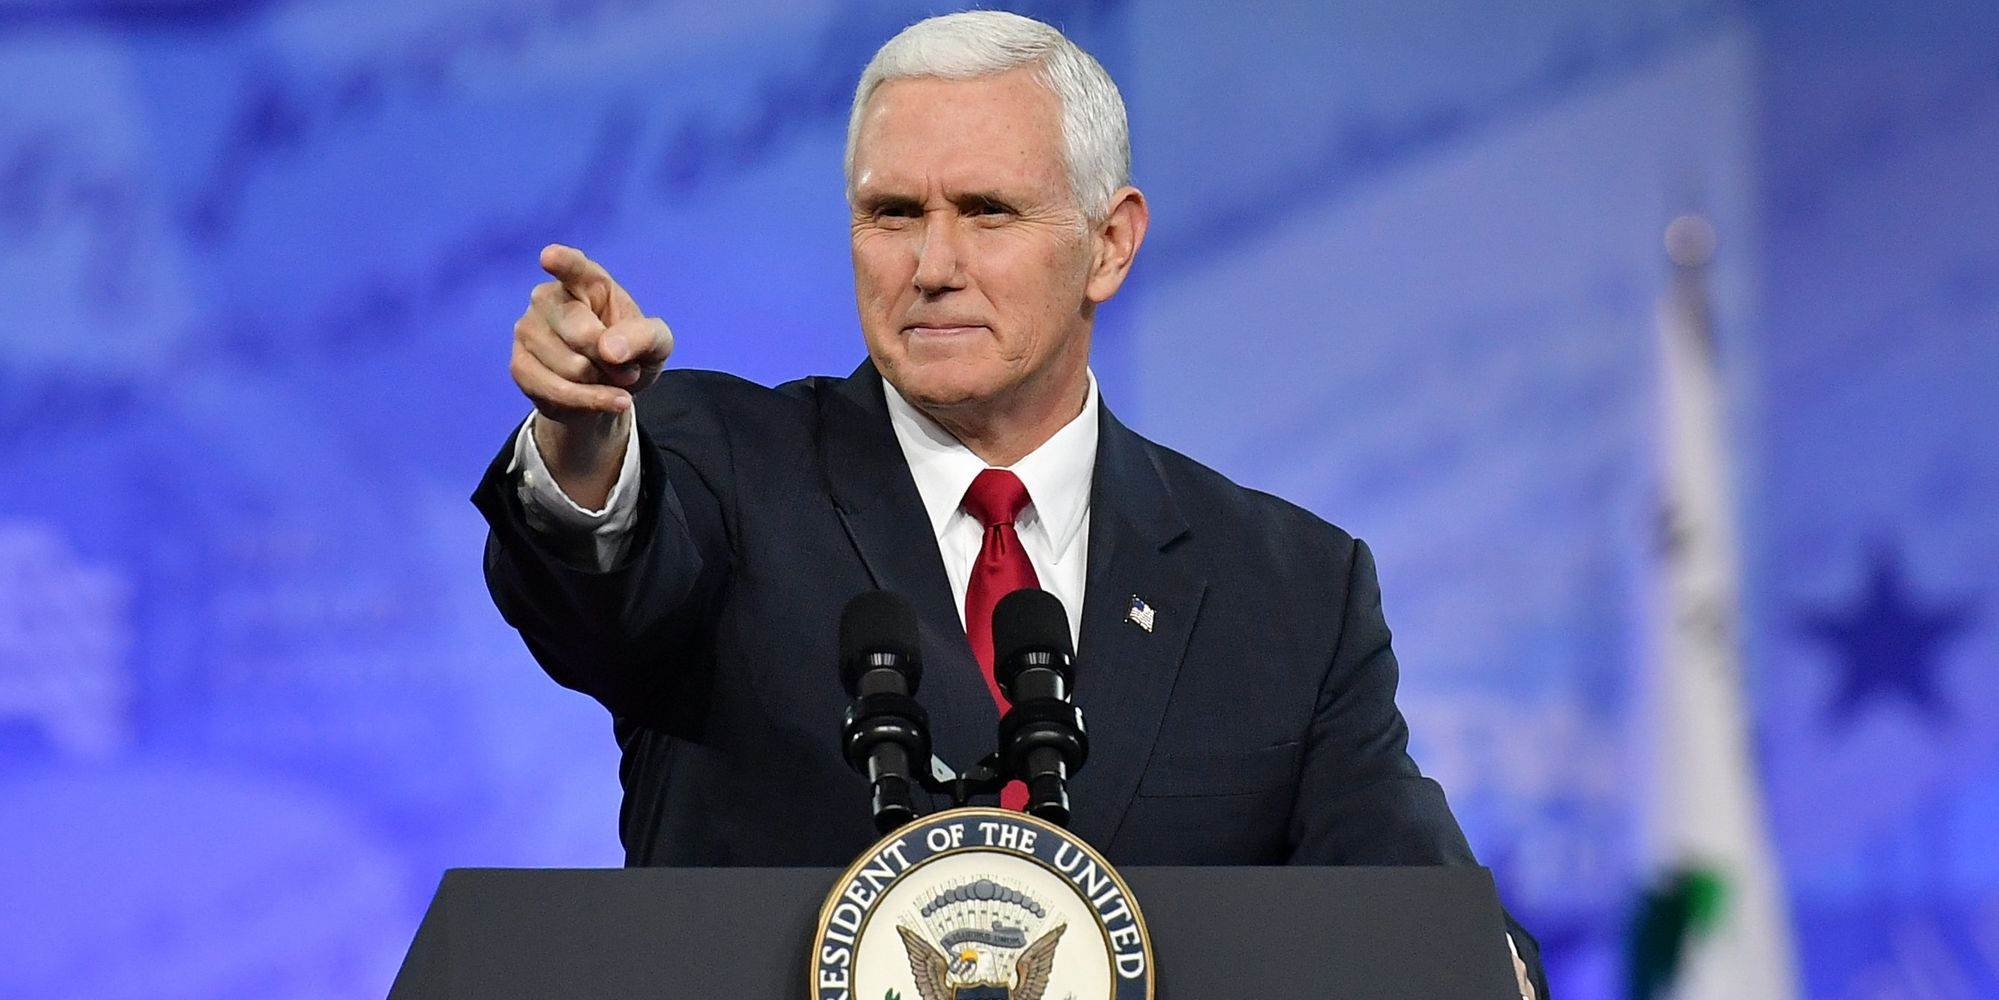 If Trump Implodes, Republicans Have A Silver Lining In Mike Pence